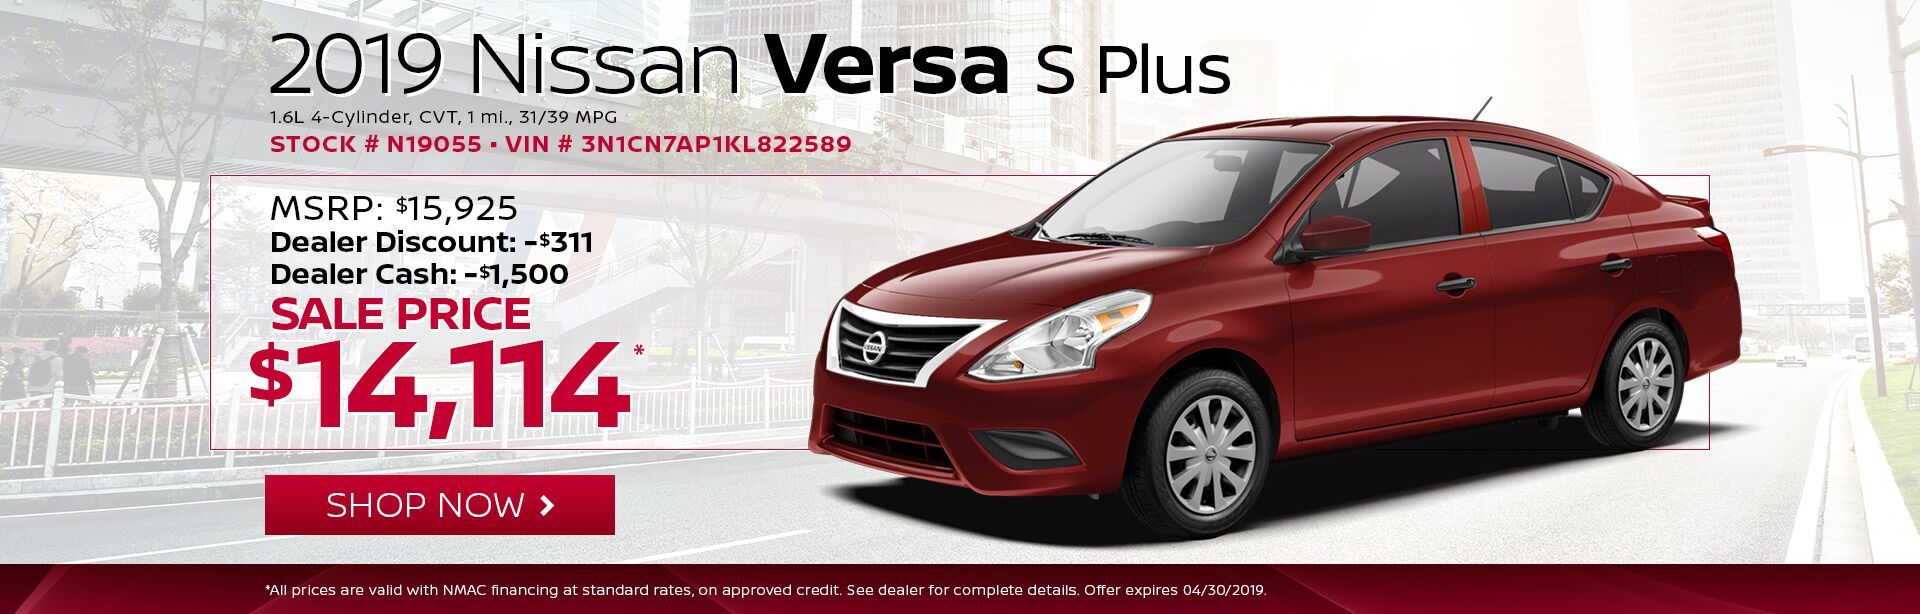 Nissan Versa S Plus We Cars